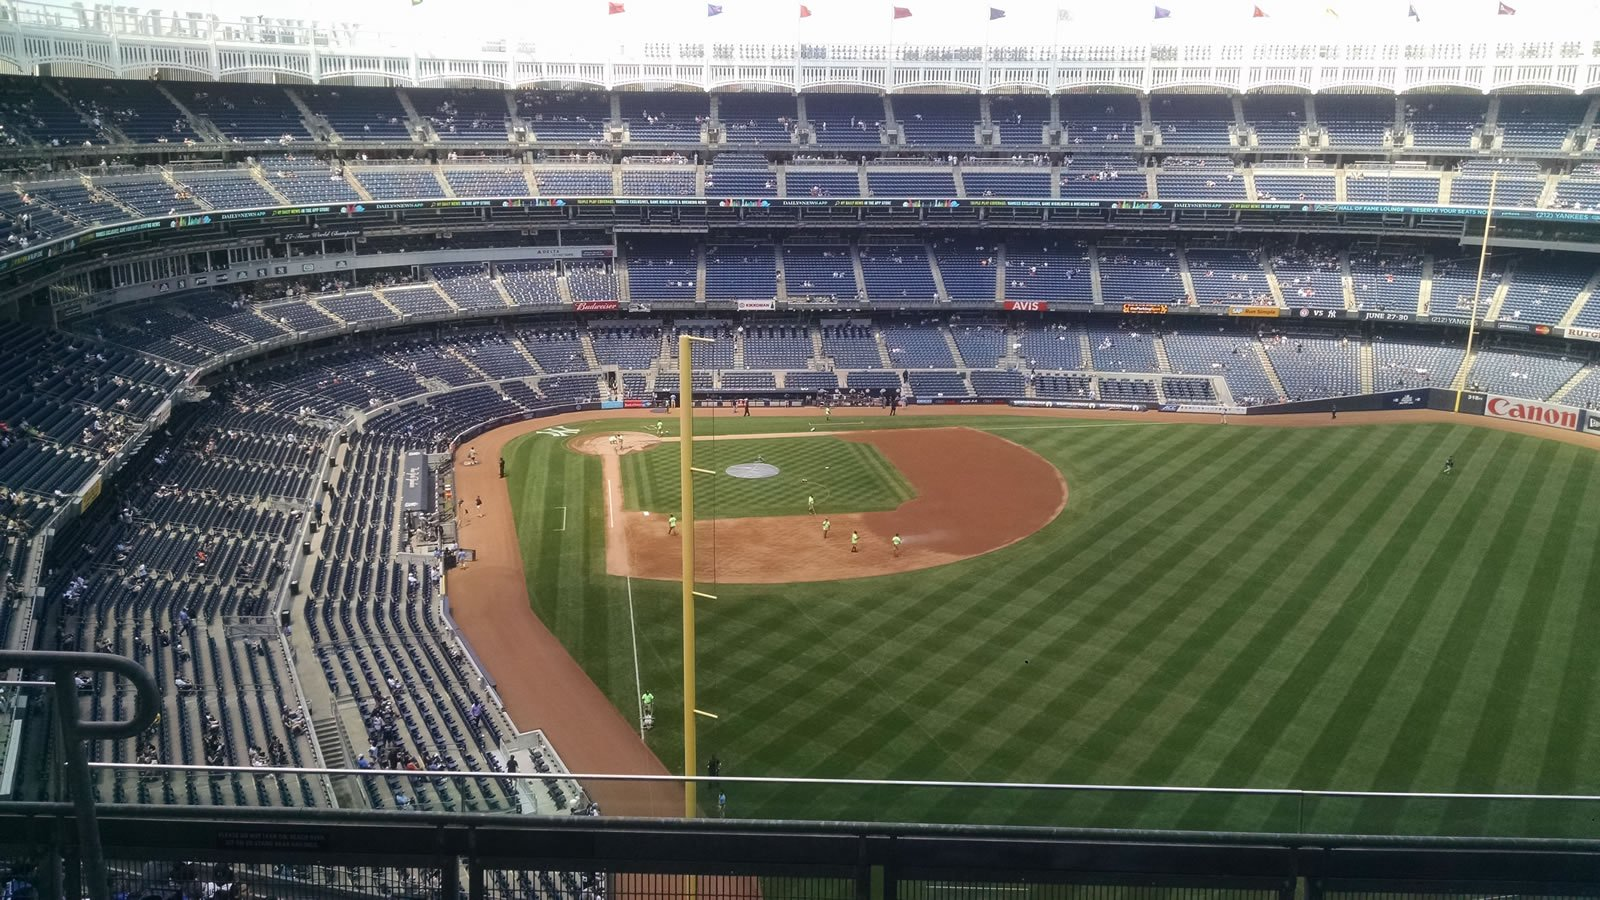 New York Yankees Seat View for Yankee Stadium Section 407A, Row 5, Seat 12